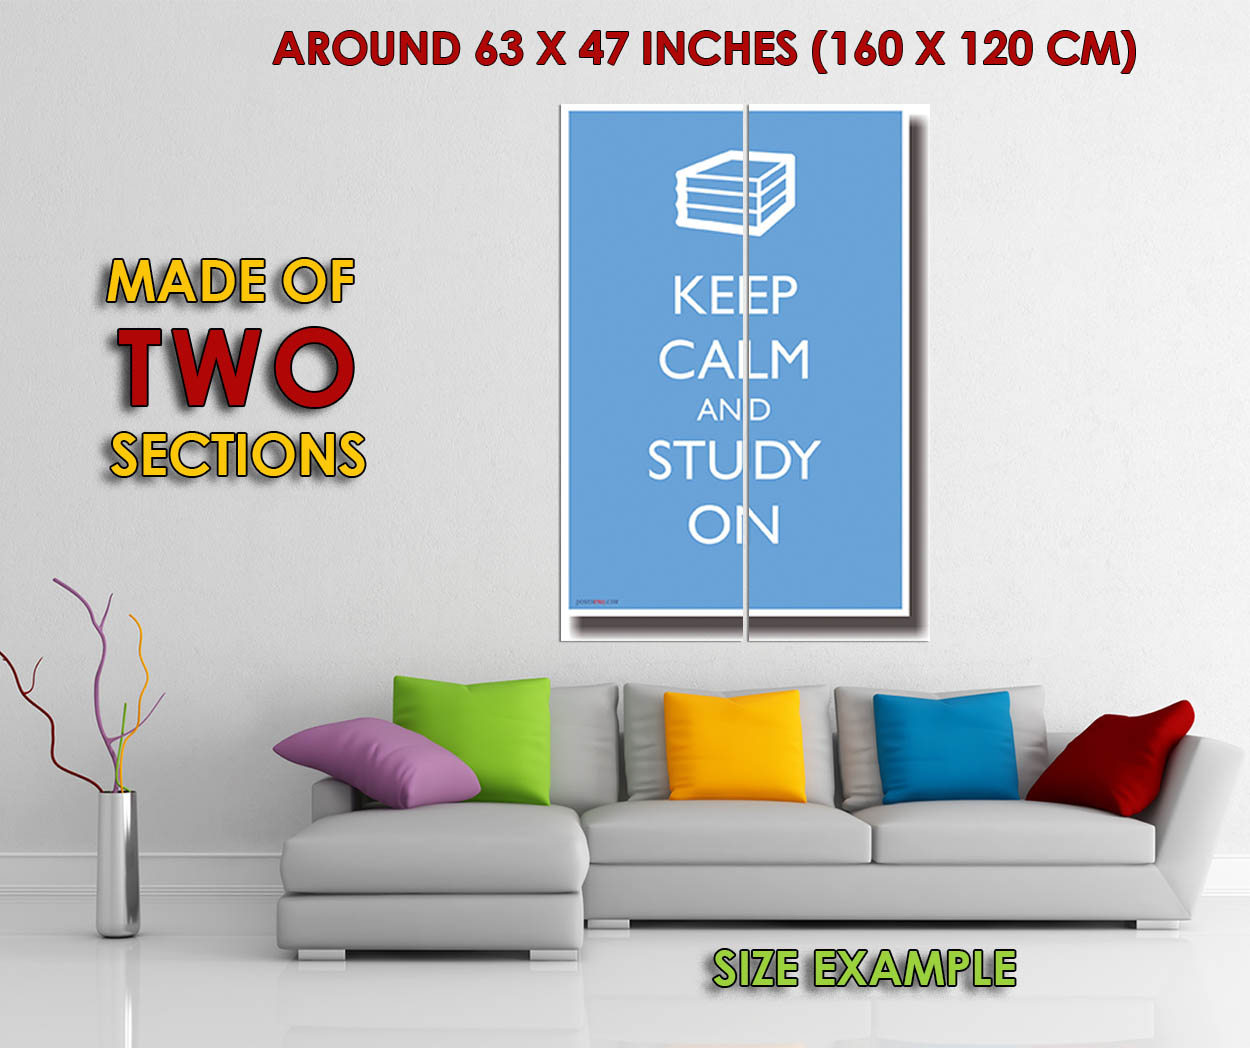 173345-Keep-Calm-and-Study-On-Humor-Decor-WALL-PRINT-POSTER-FR miniature 6